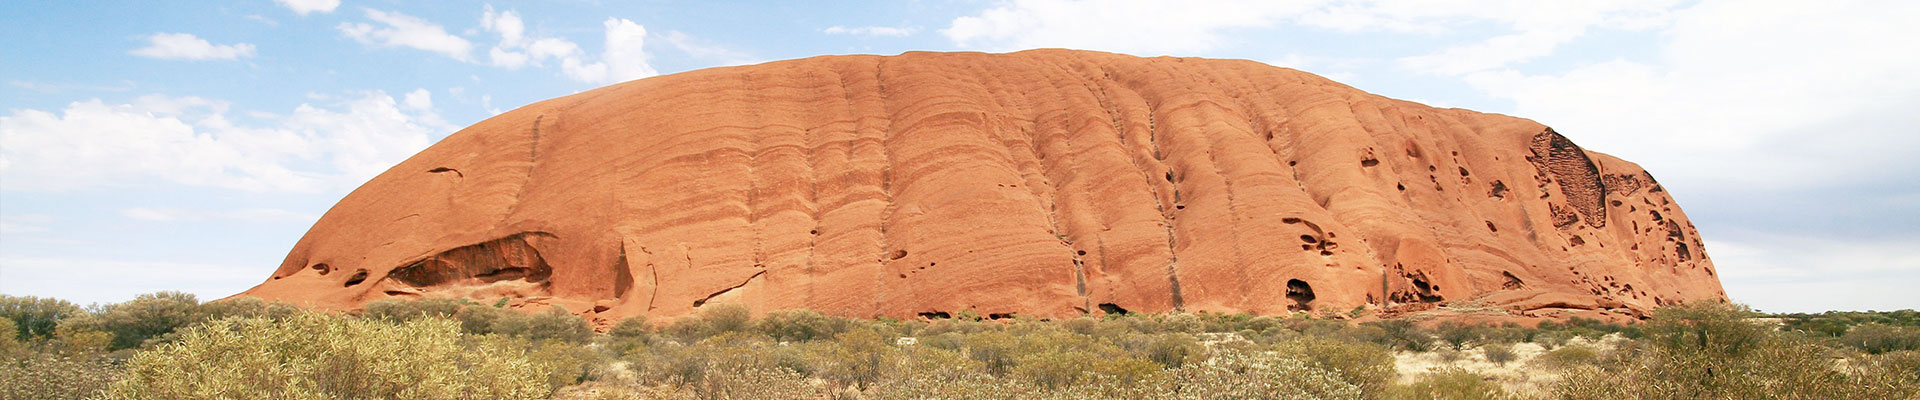 Fantasy RV Tours: 6 Day Real Outback Add-on (06OROF-050120)